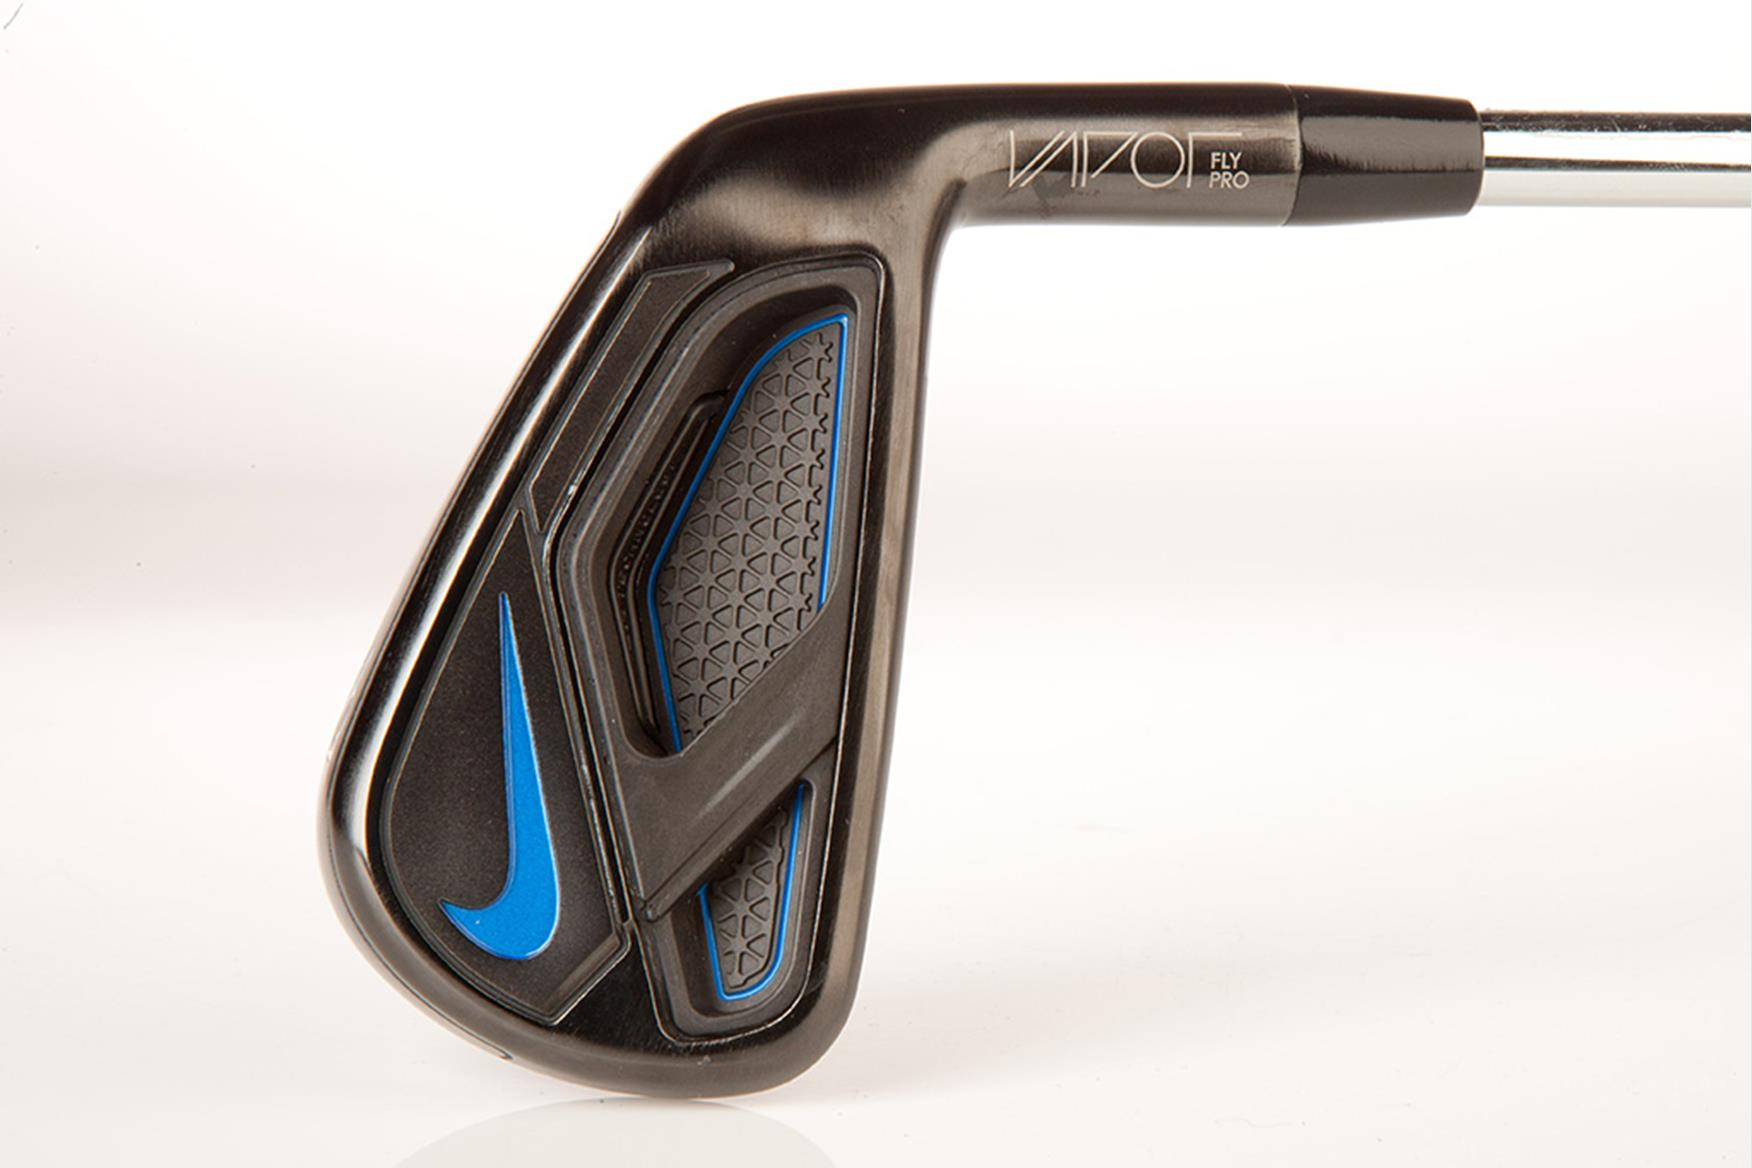 9907201f7f7 Nike Vapor Fly Pro Irons Review